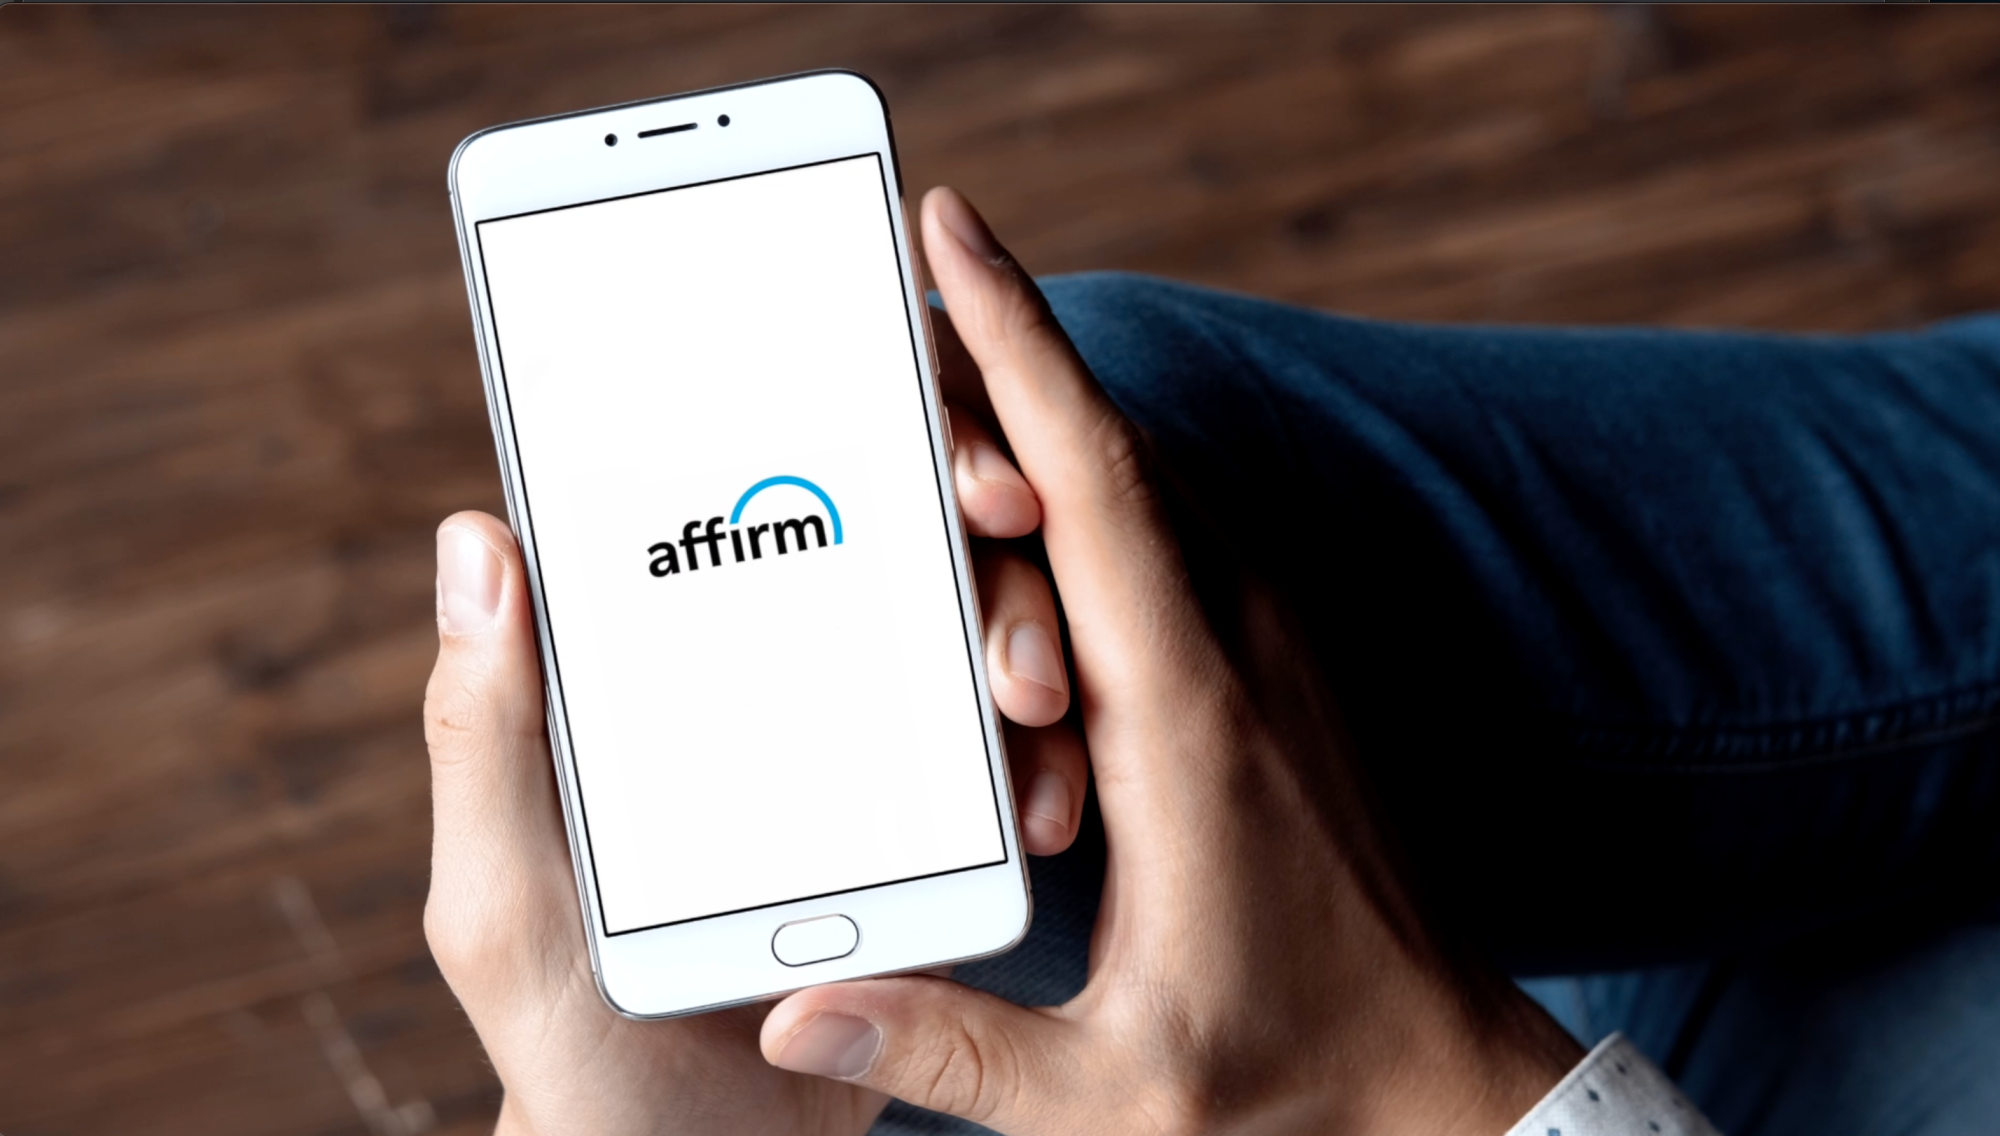 Affirm Holdings) hit the public markets on Wednesday, a week after a deadly Capitol Hill riot that drew widespread attention to tech companies billing...